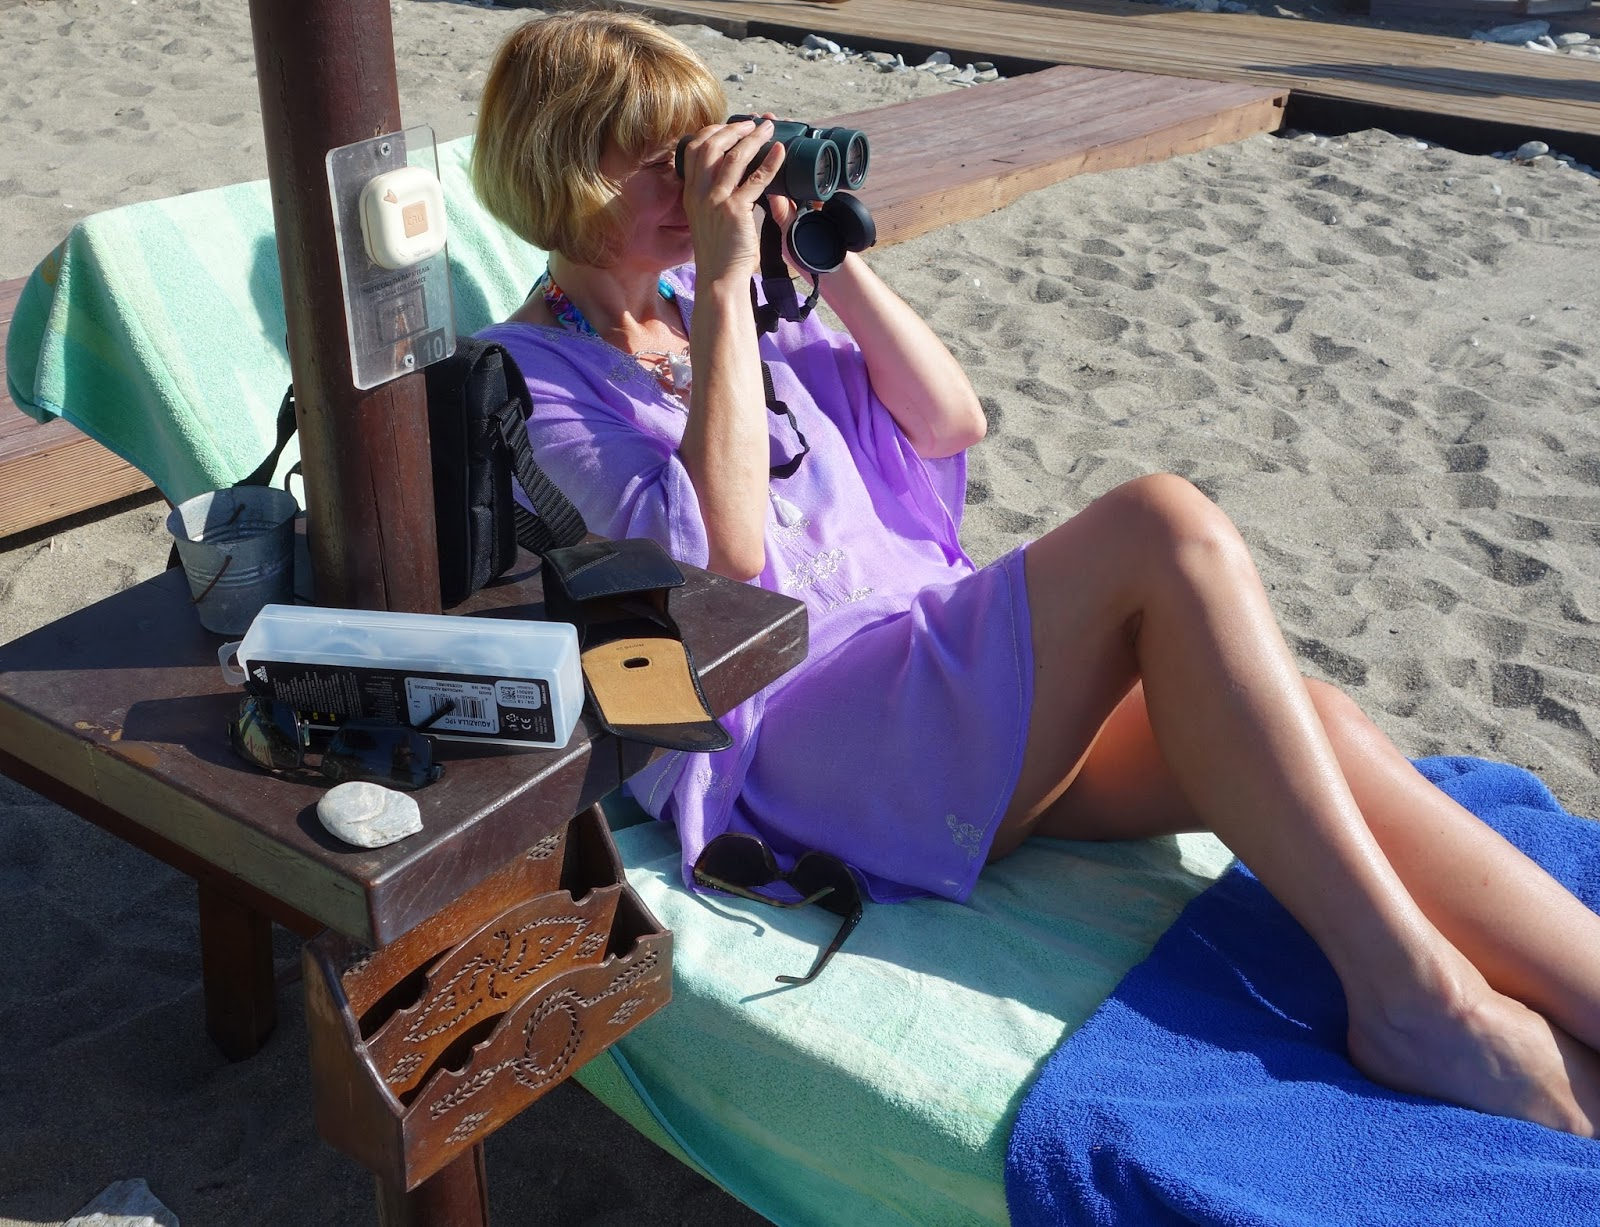 Binoculars are a great addition to the holiday suitcase if there are ships to watch